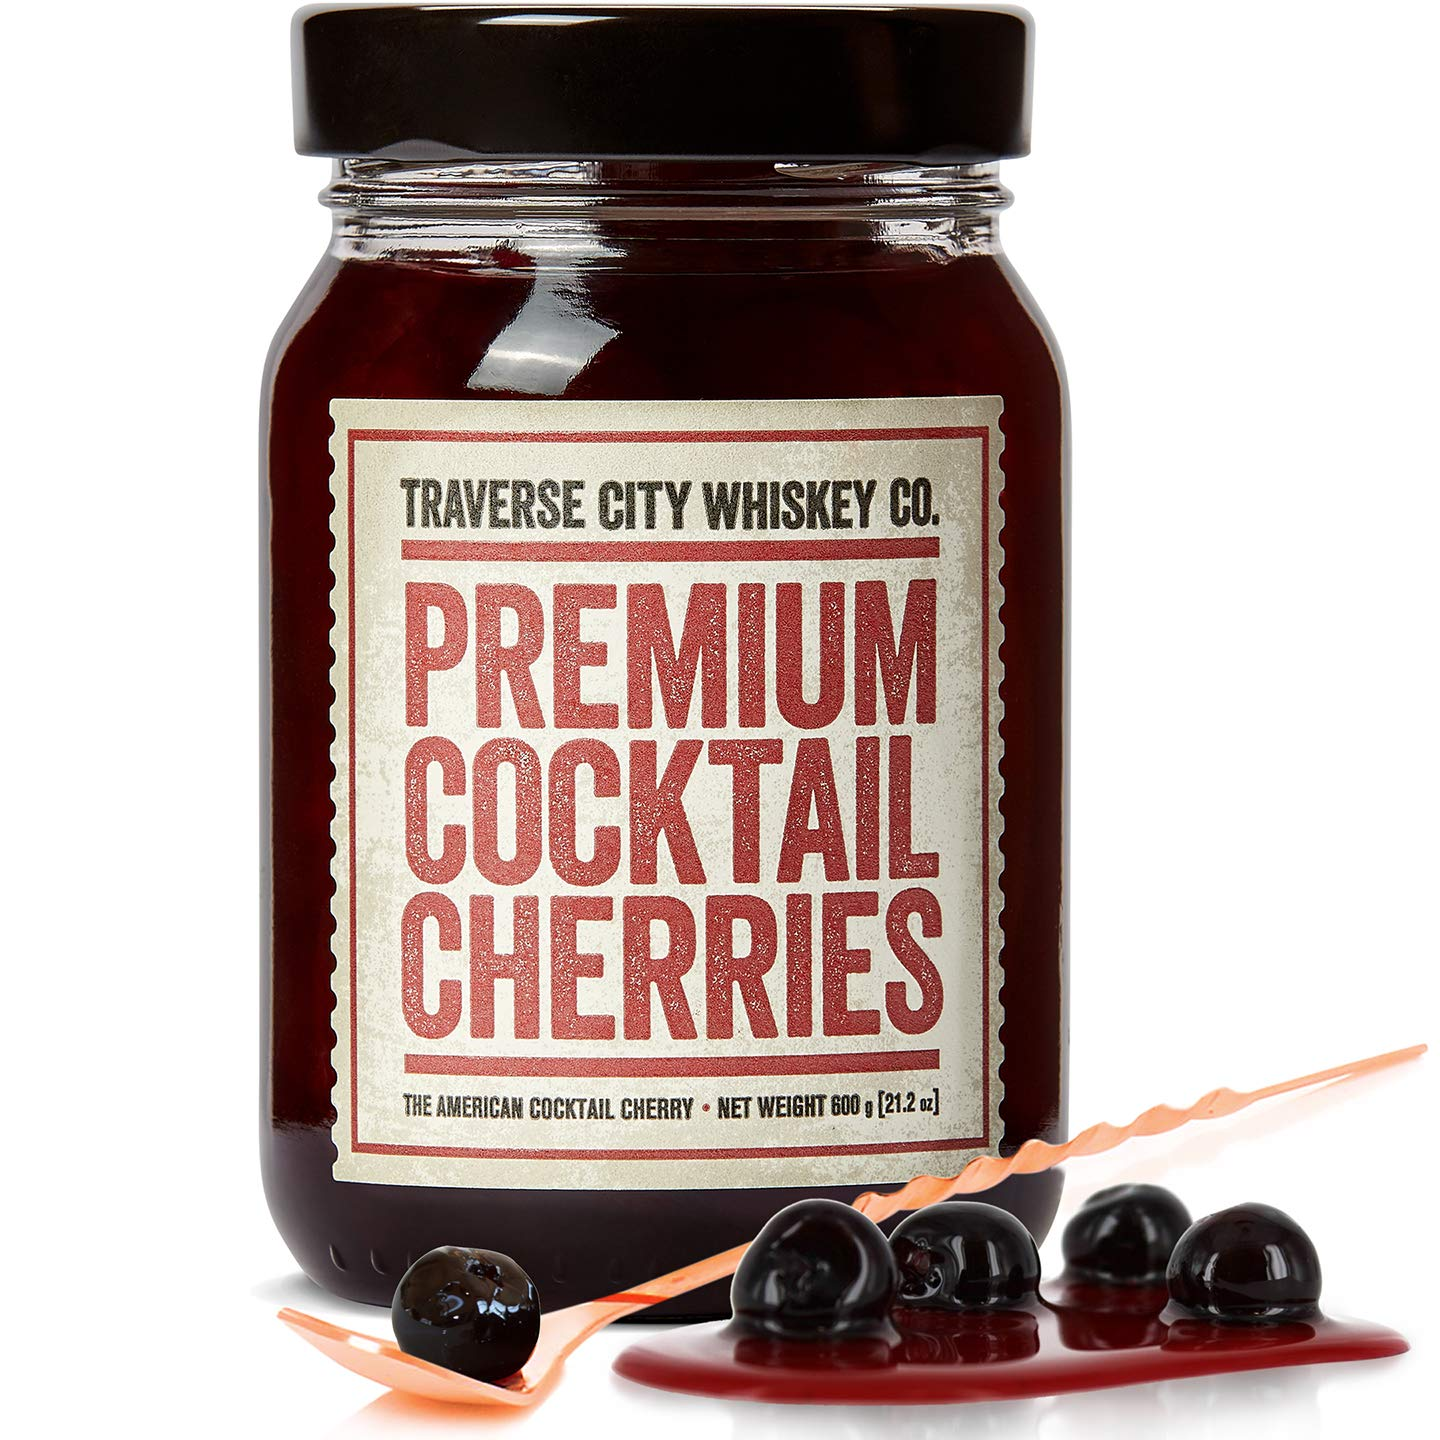 Premium Cocktail Cherries for Cocktails and Desserts | All American, Natural, Certified Kosher, Stemless, Slow-Cooked Garnish for Old Fashioned, Ice Cream Sundaes & more by TCWC (21 oz)